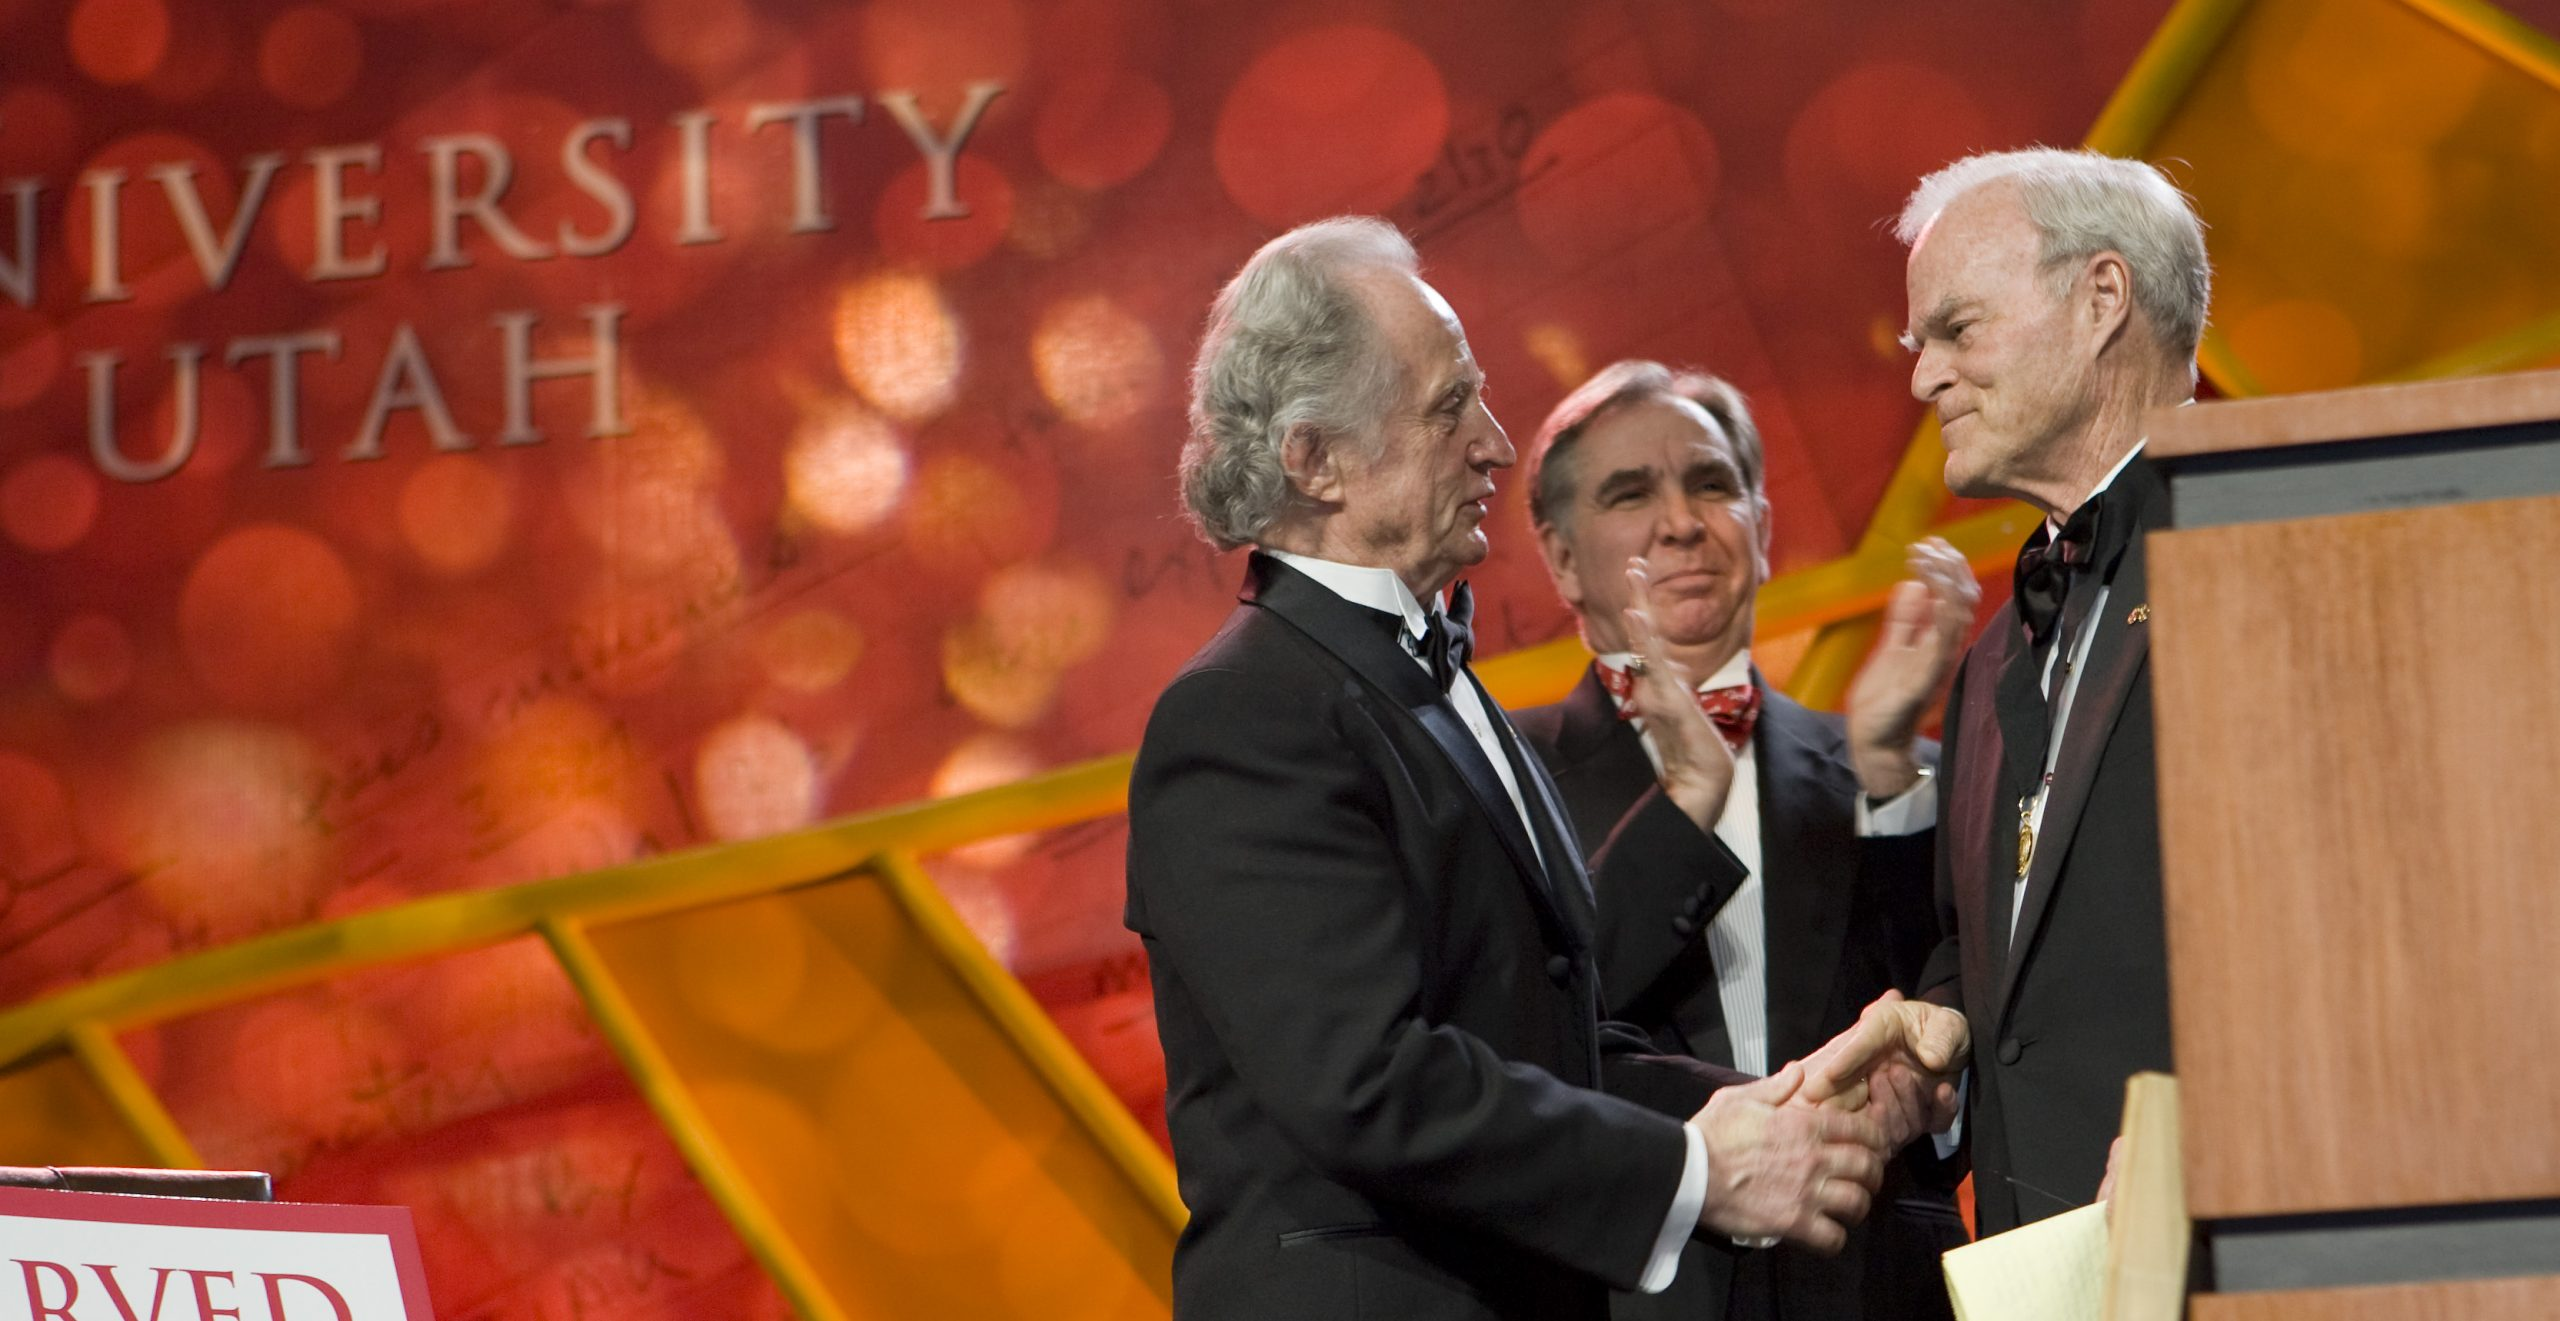 From left to right: Mario R. Capecchi, U of U President Michael K. Young, and Spencer F. Eccles.